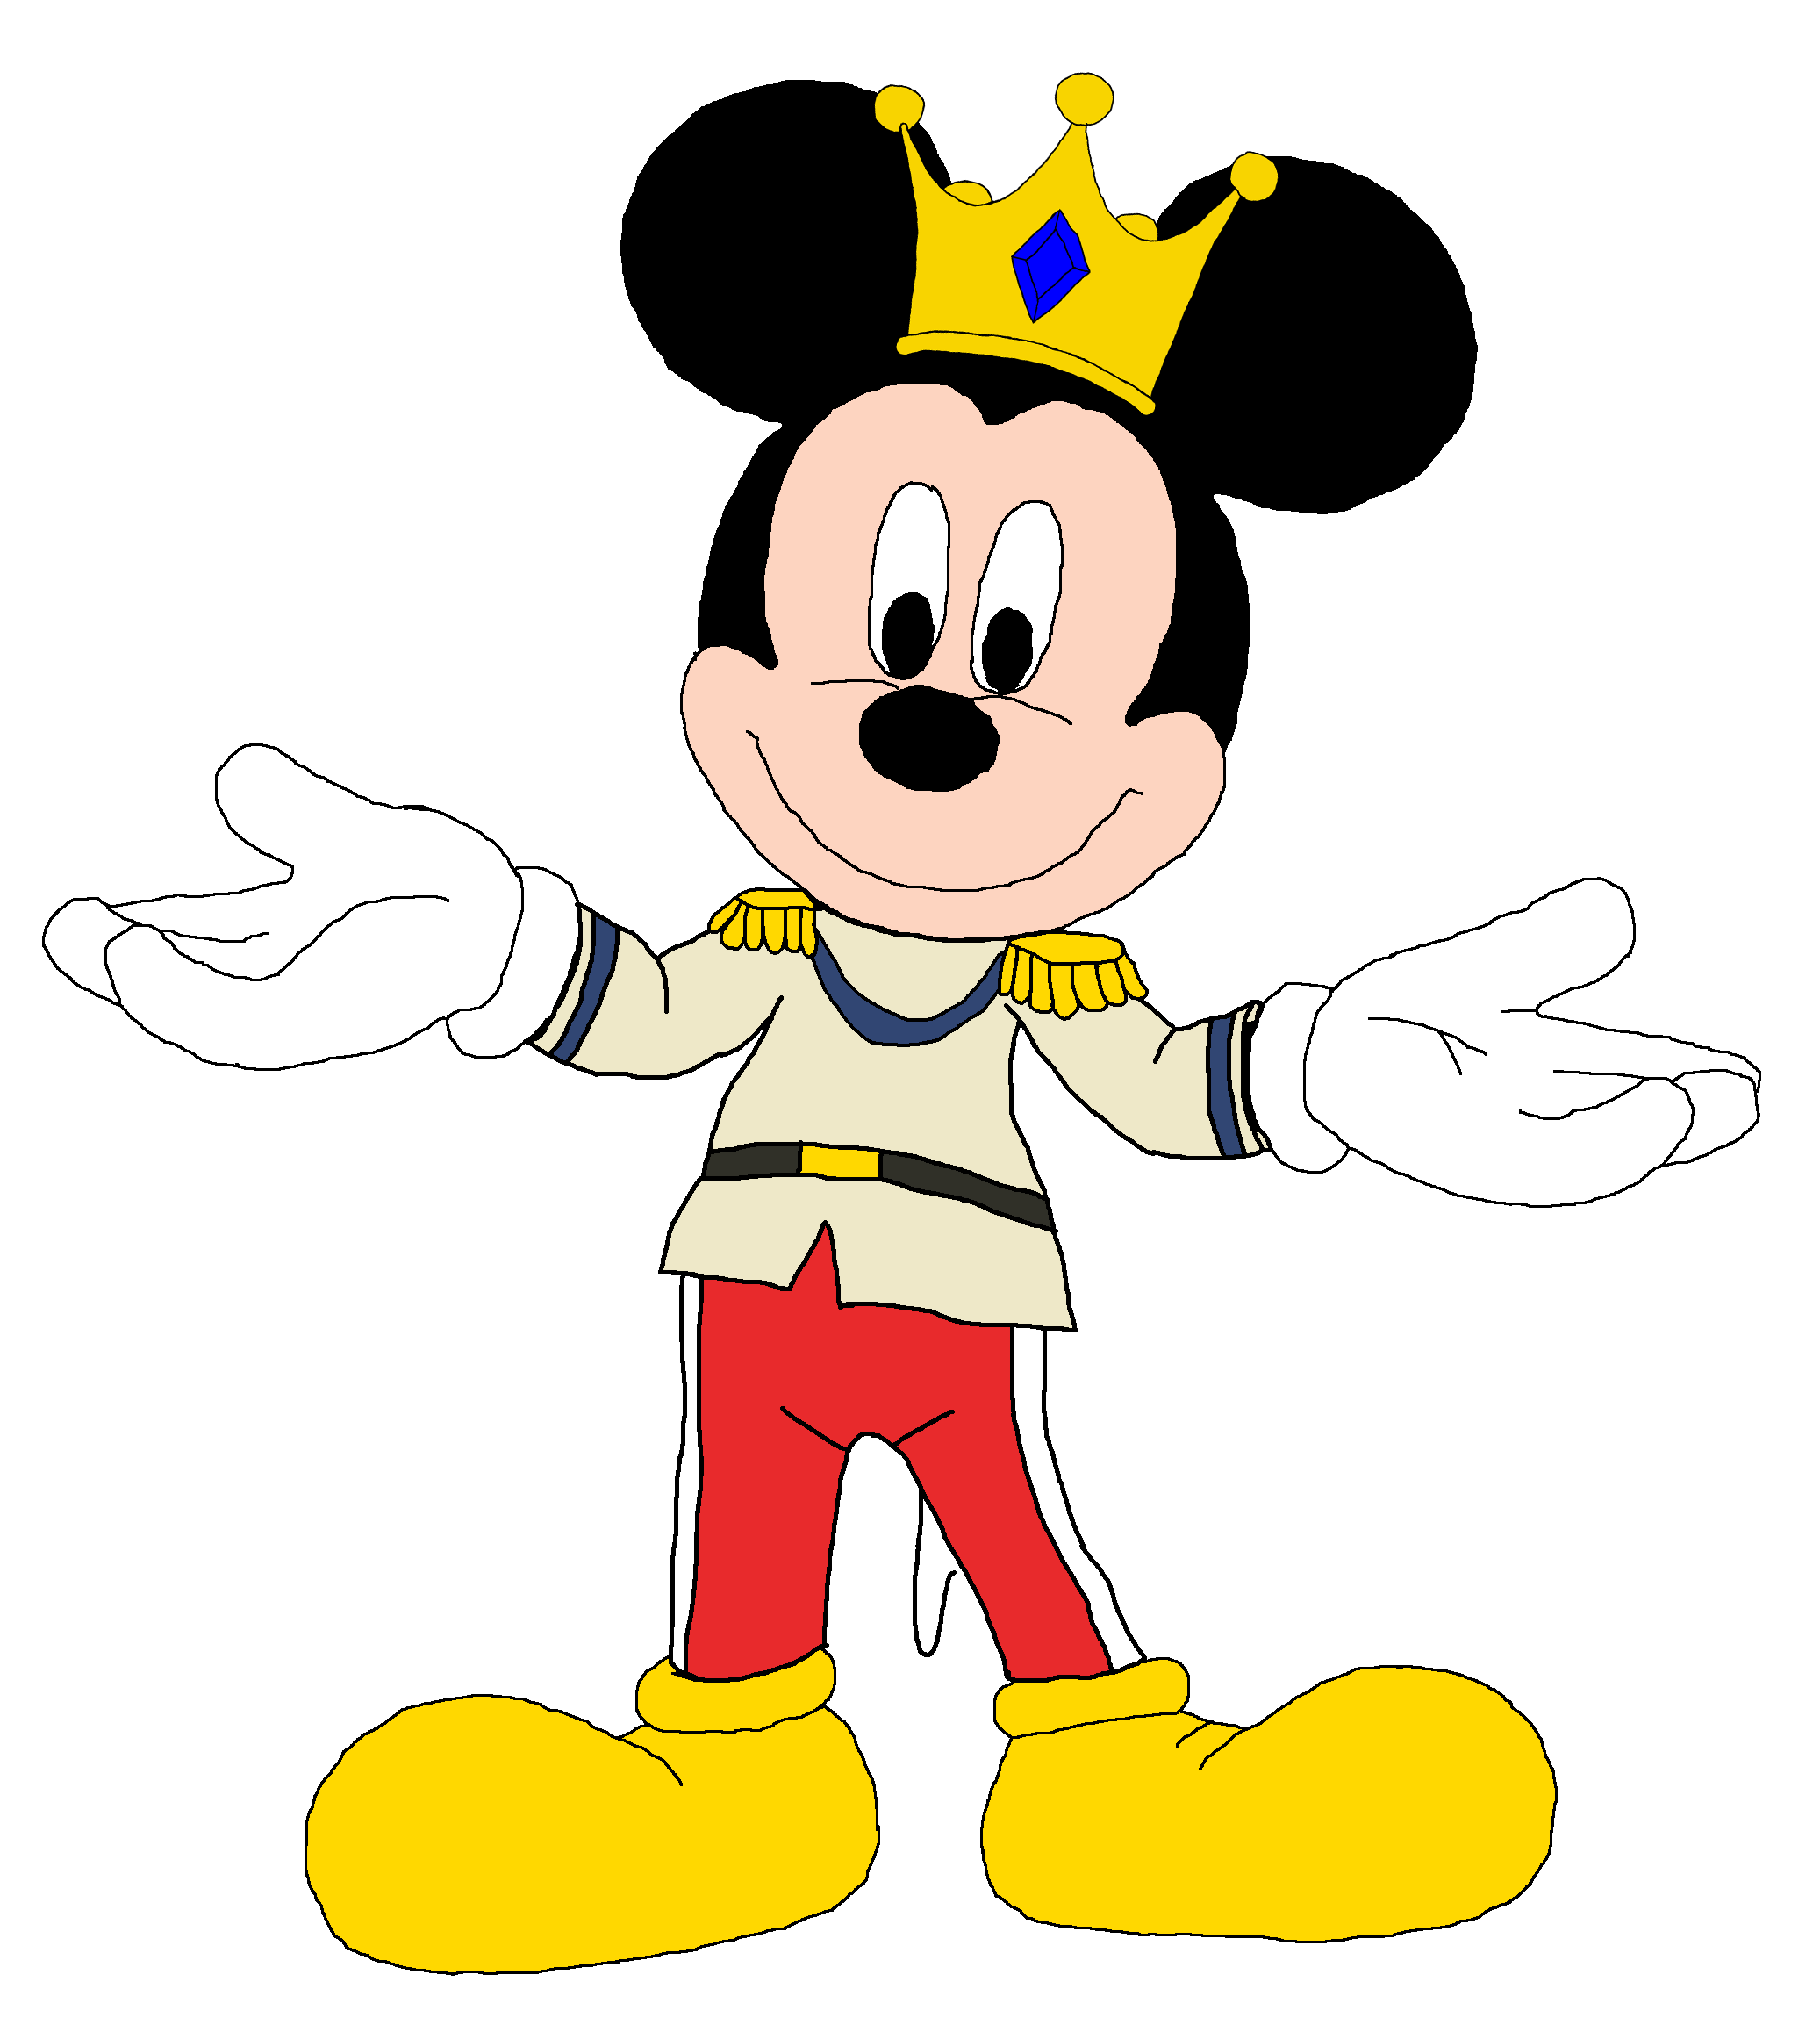 mickey mouse clipart free at getdrawings com free for personal use rh getdrawings com clipart of mickey mouse clipart of mickey mouse head